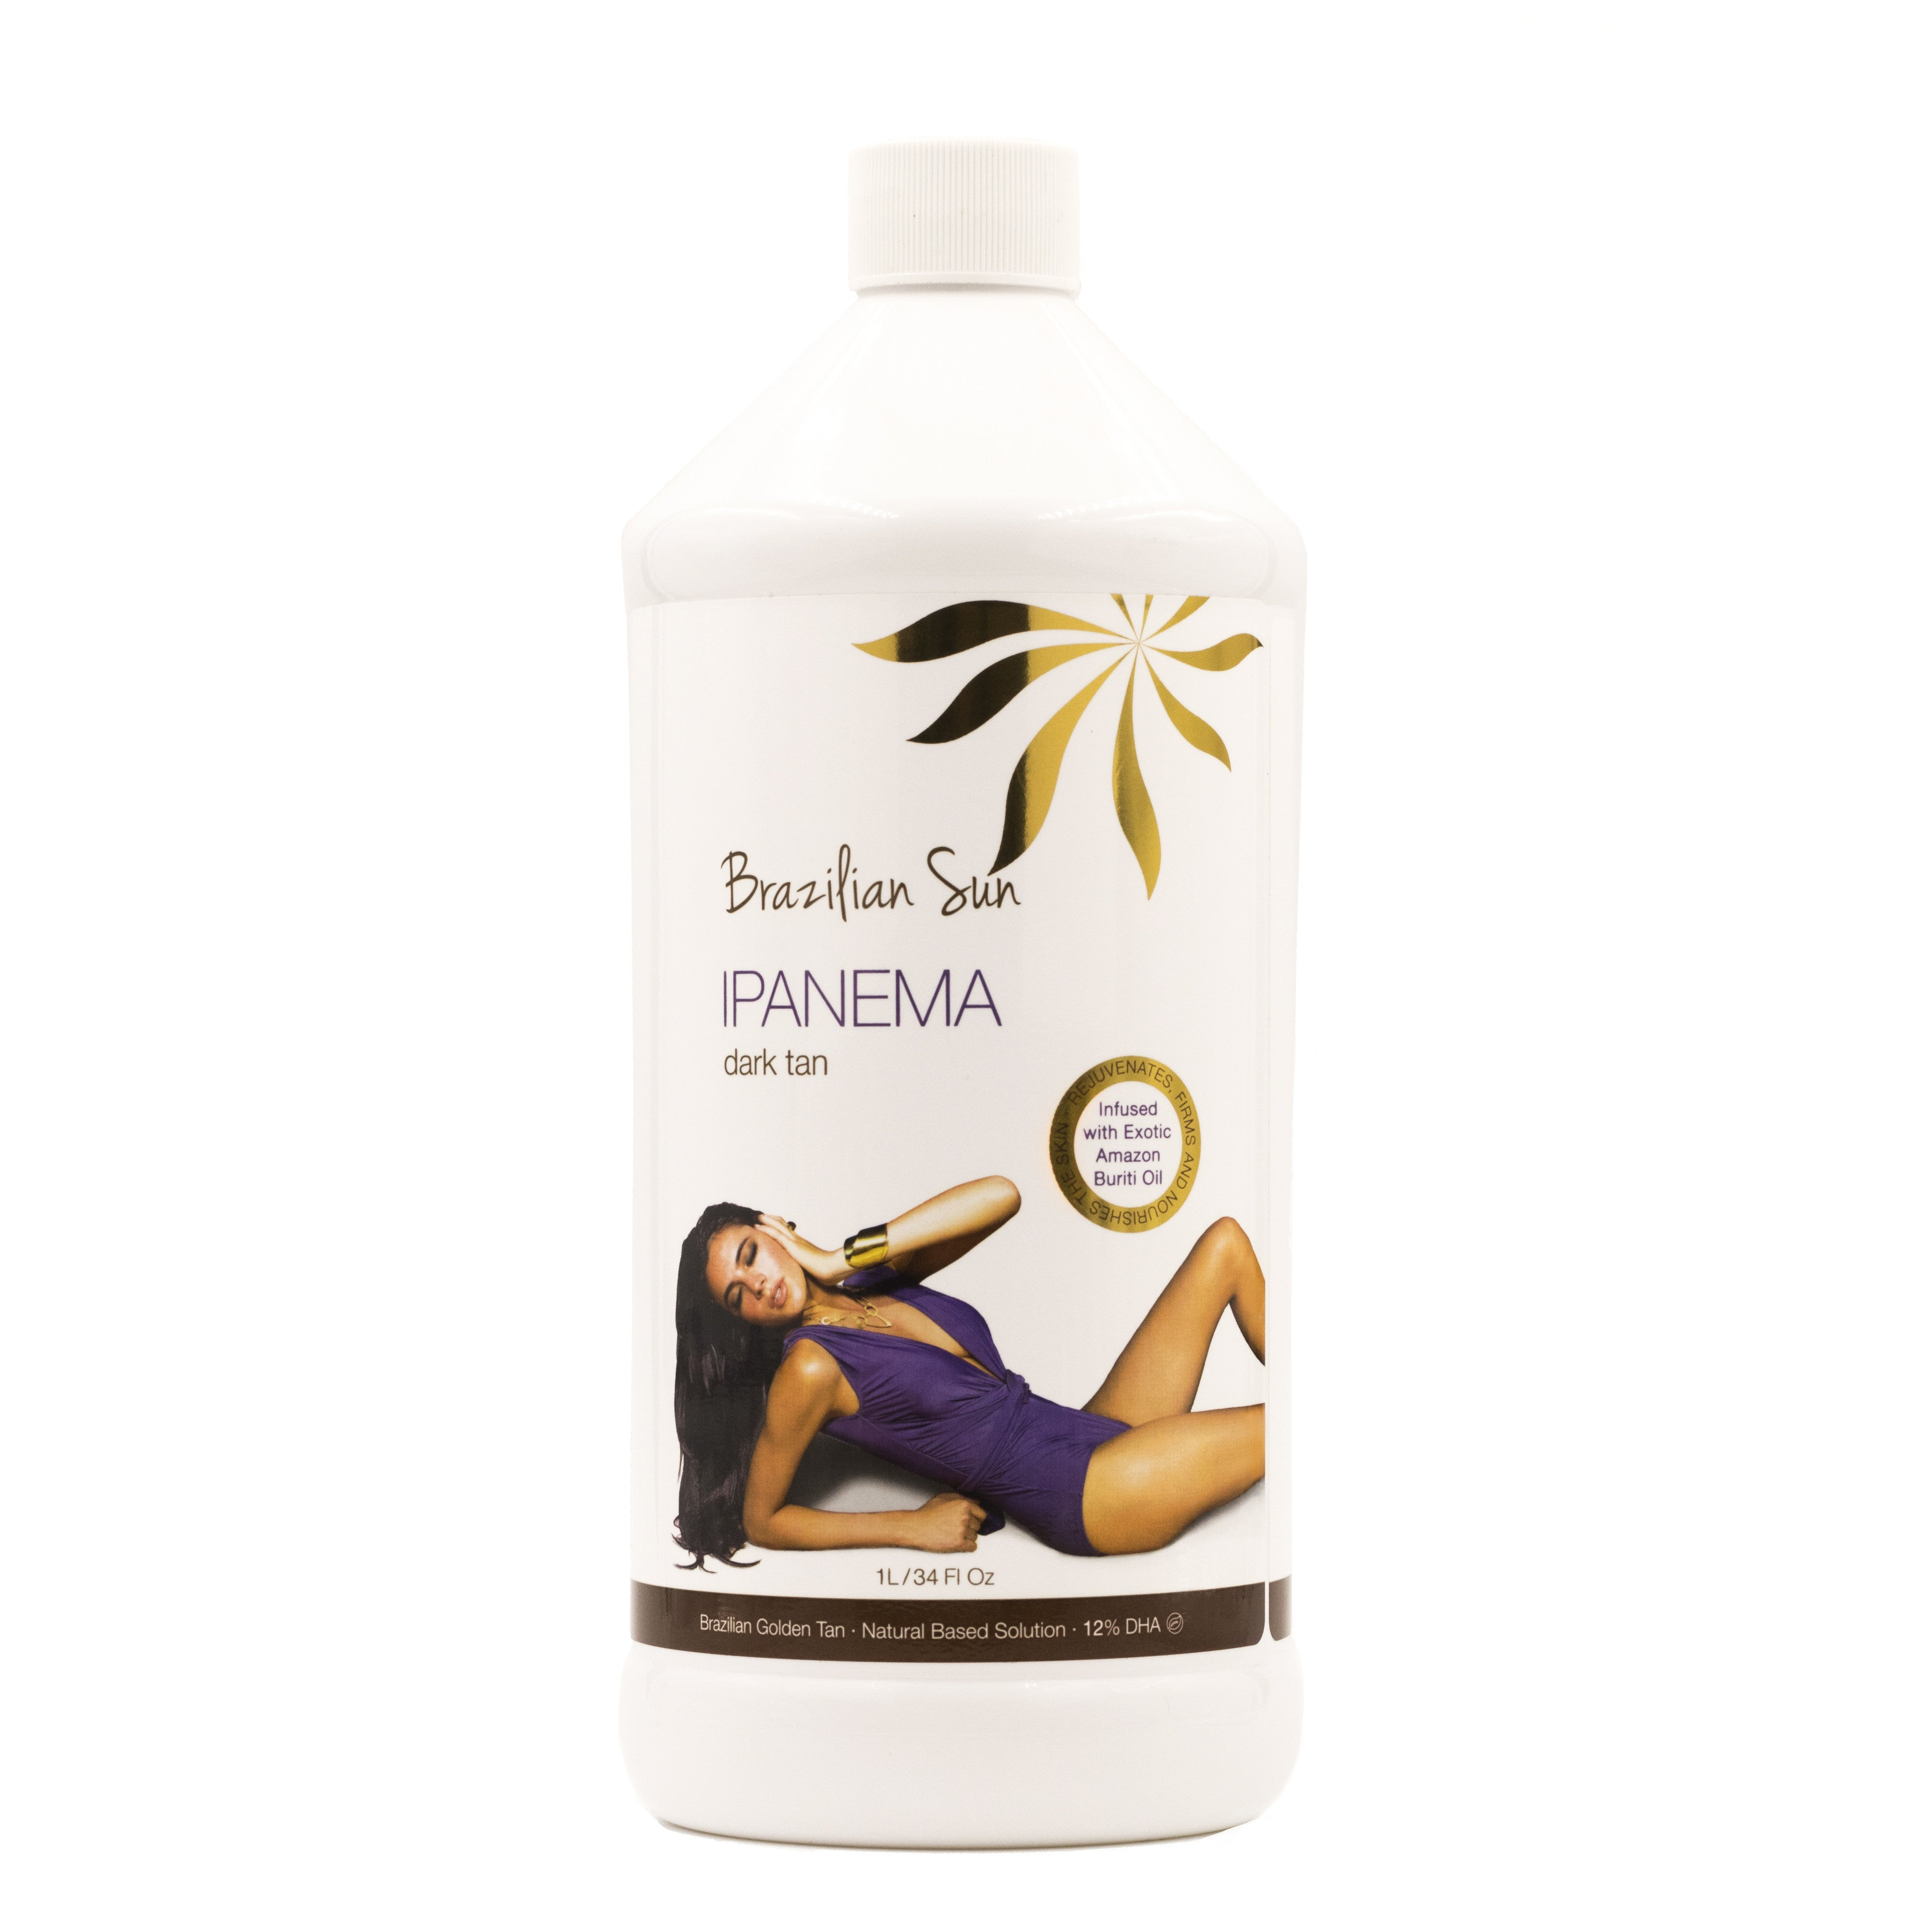 IPANEMA – DARK TAN - NATURAL BASED TANNING SOLUTION  12% DHA - Brazilian Sun